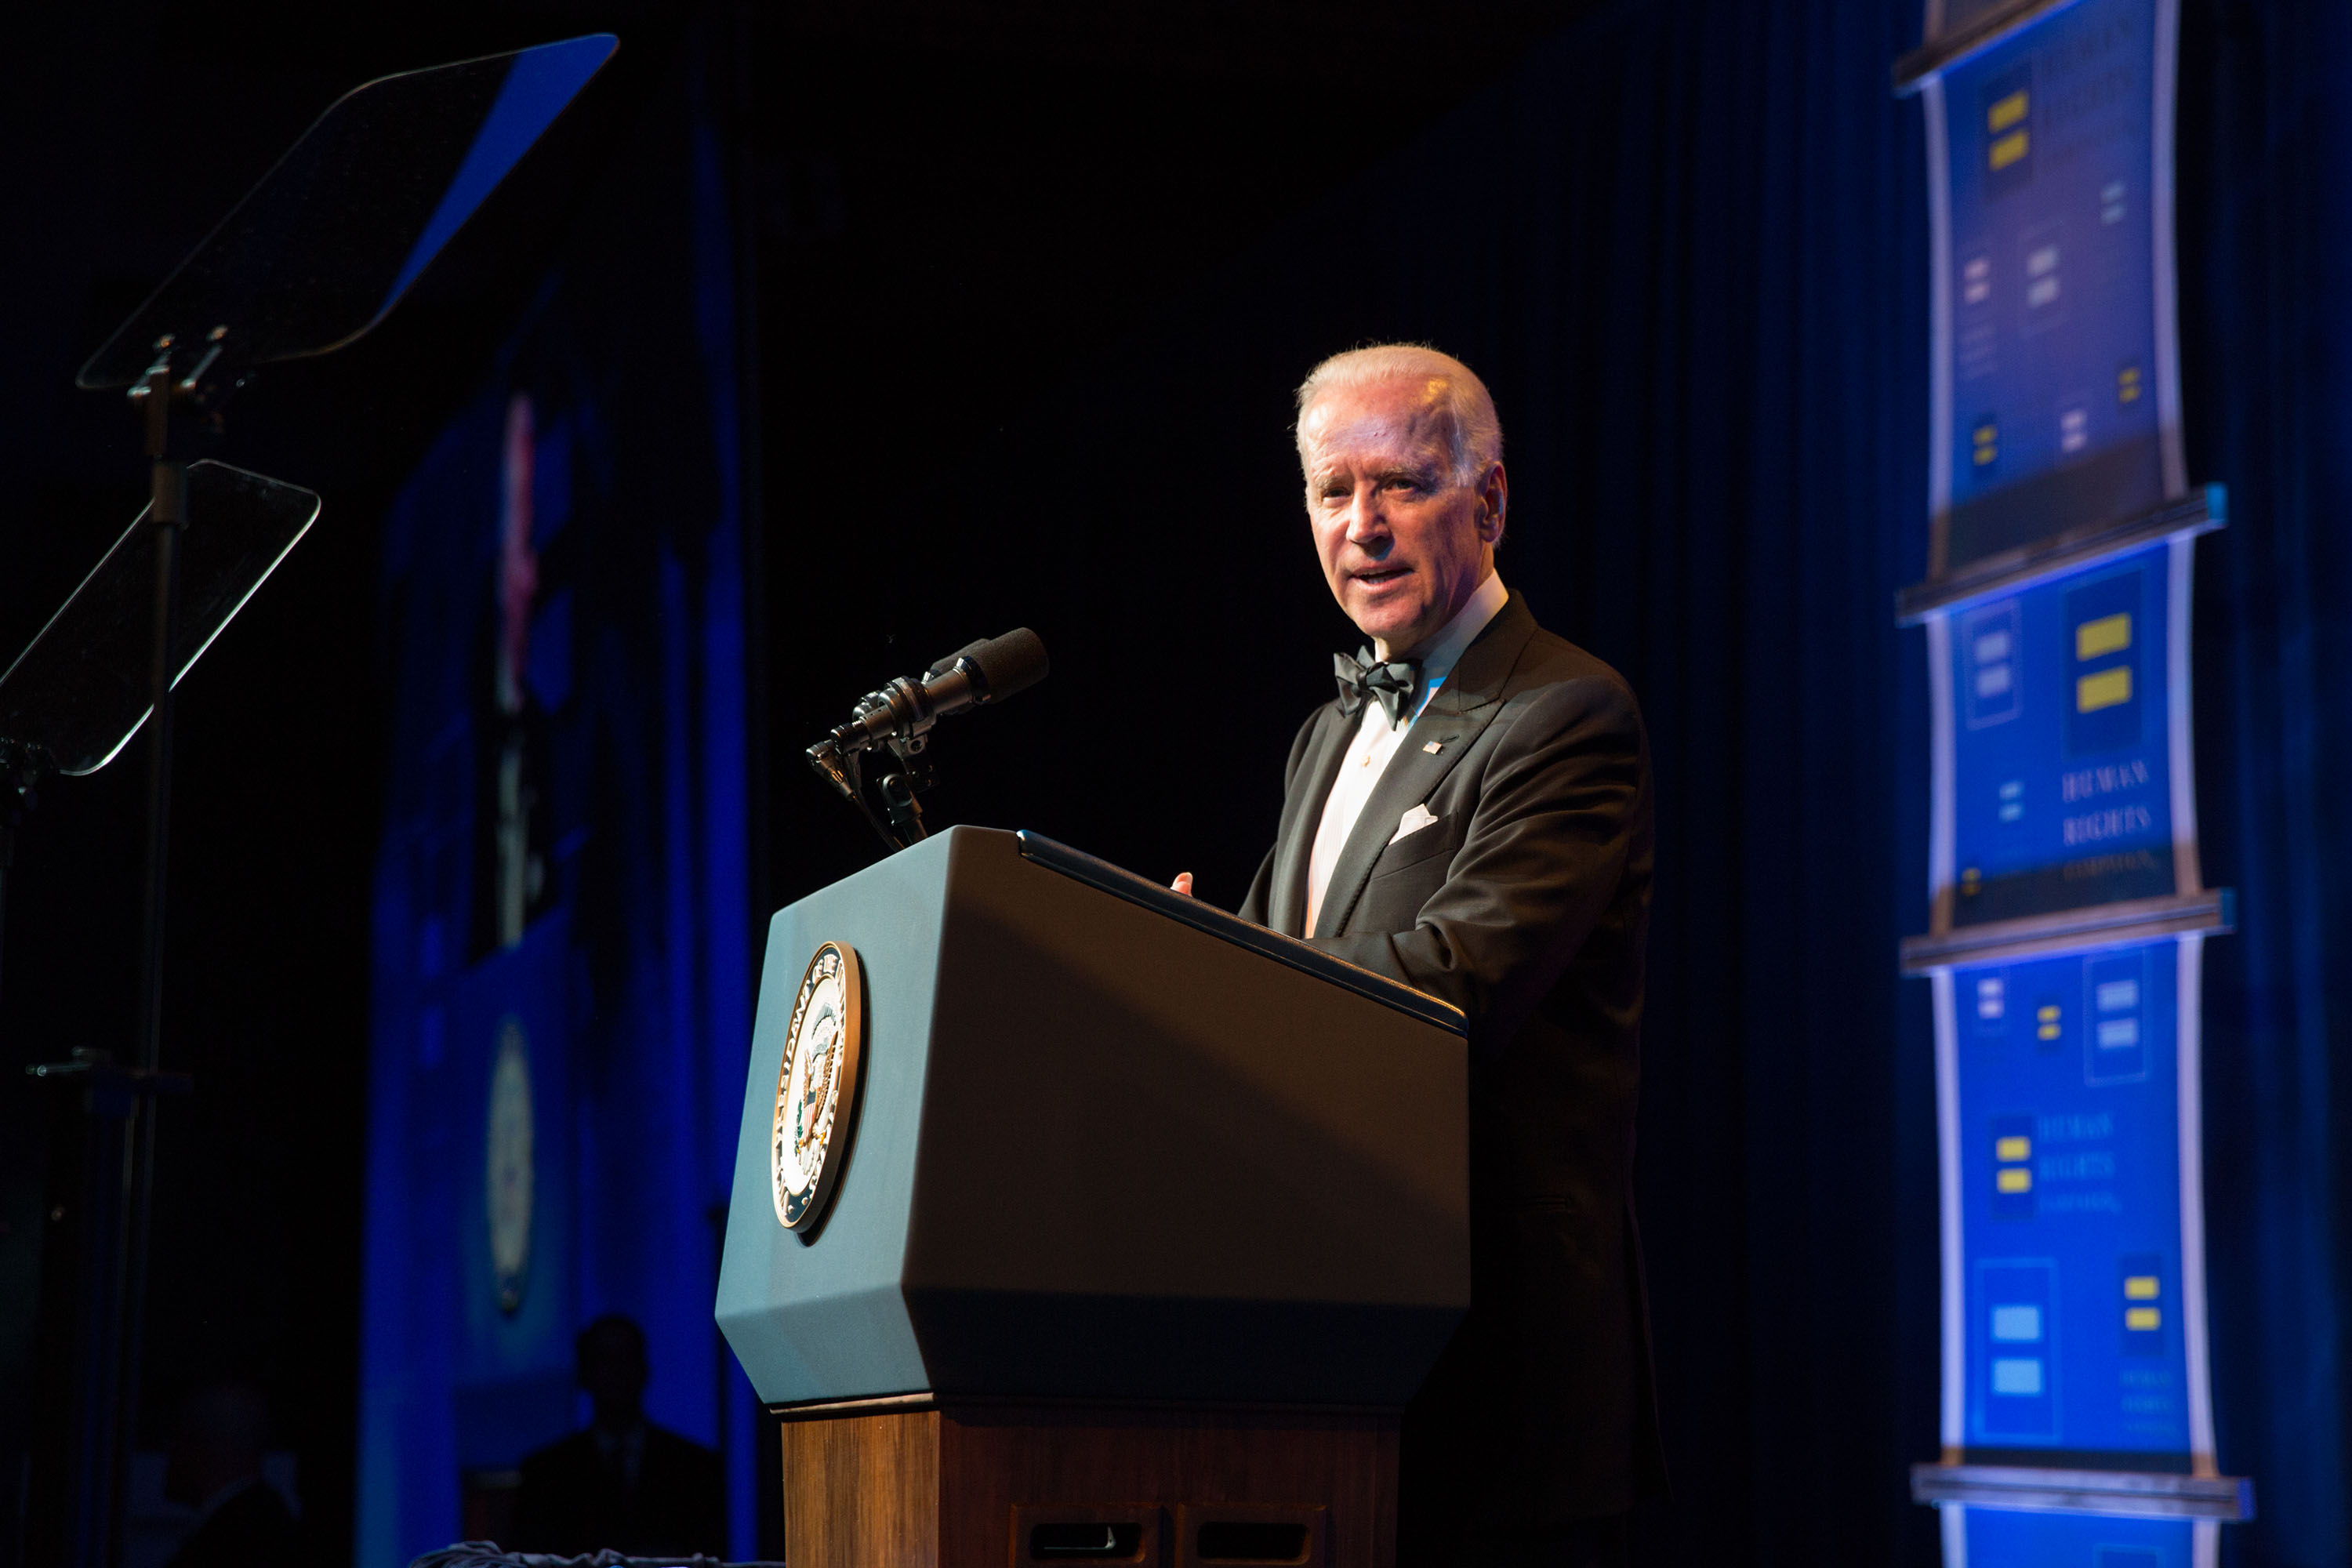 Vice President Joe Biden gives the keynote address at the Human Rights Campaign gala in Los Angeles, Calif., March 22, 2014.